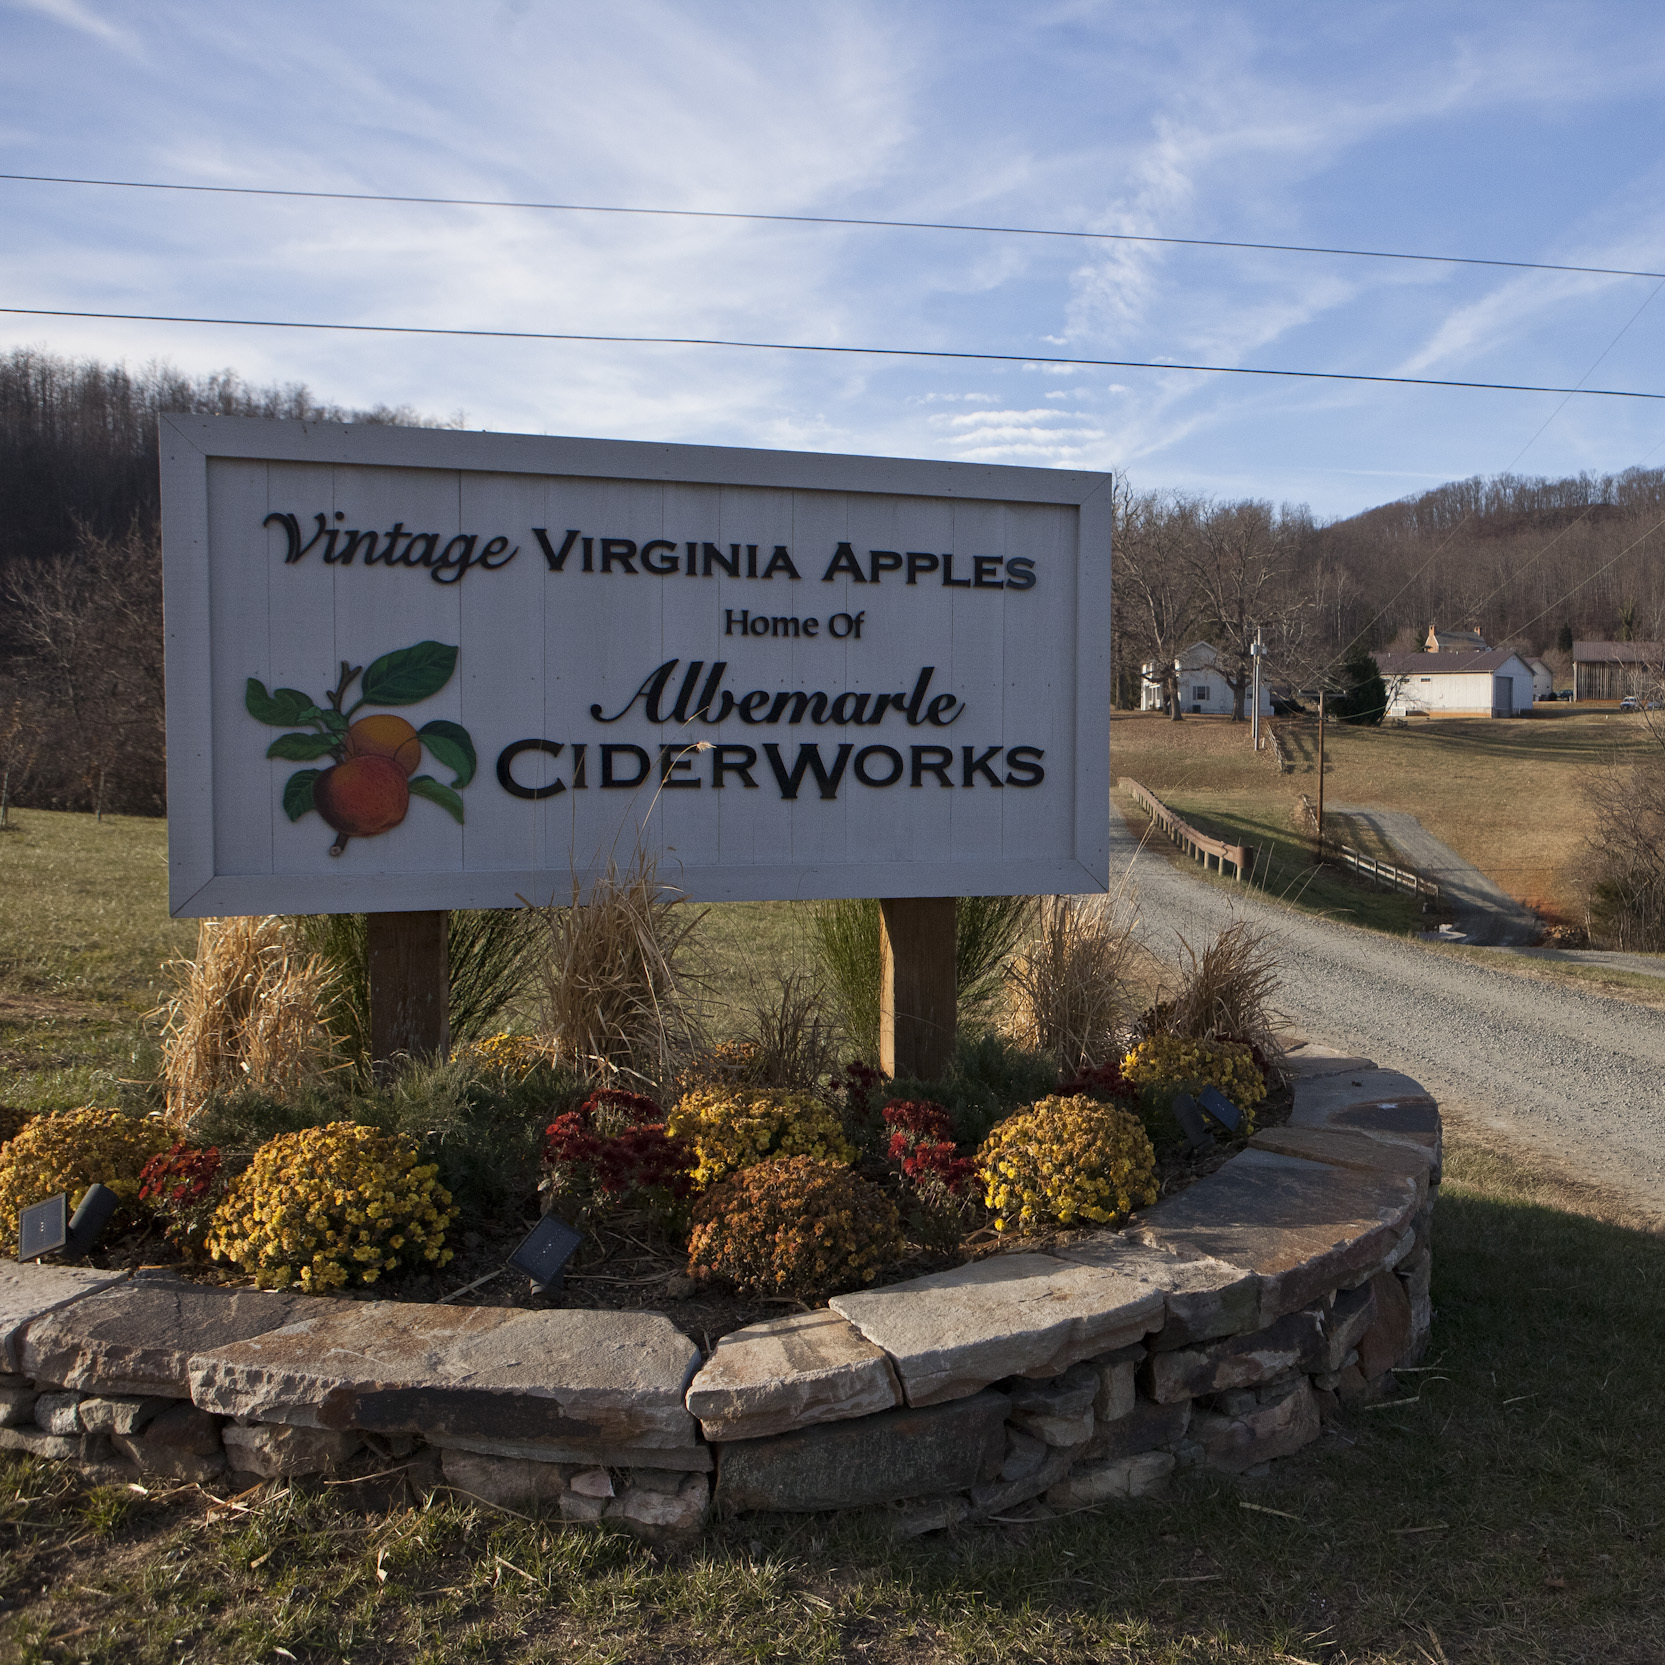 The entrance to Albemarle CiderWorks in North Garden, Va.